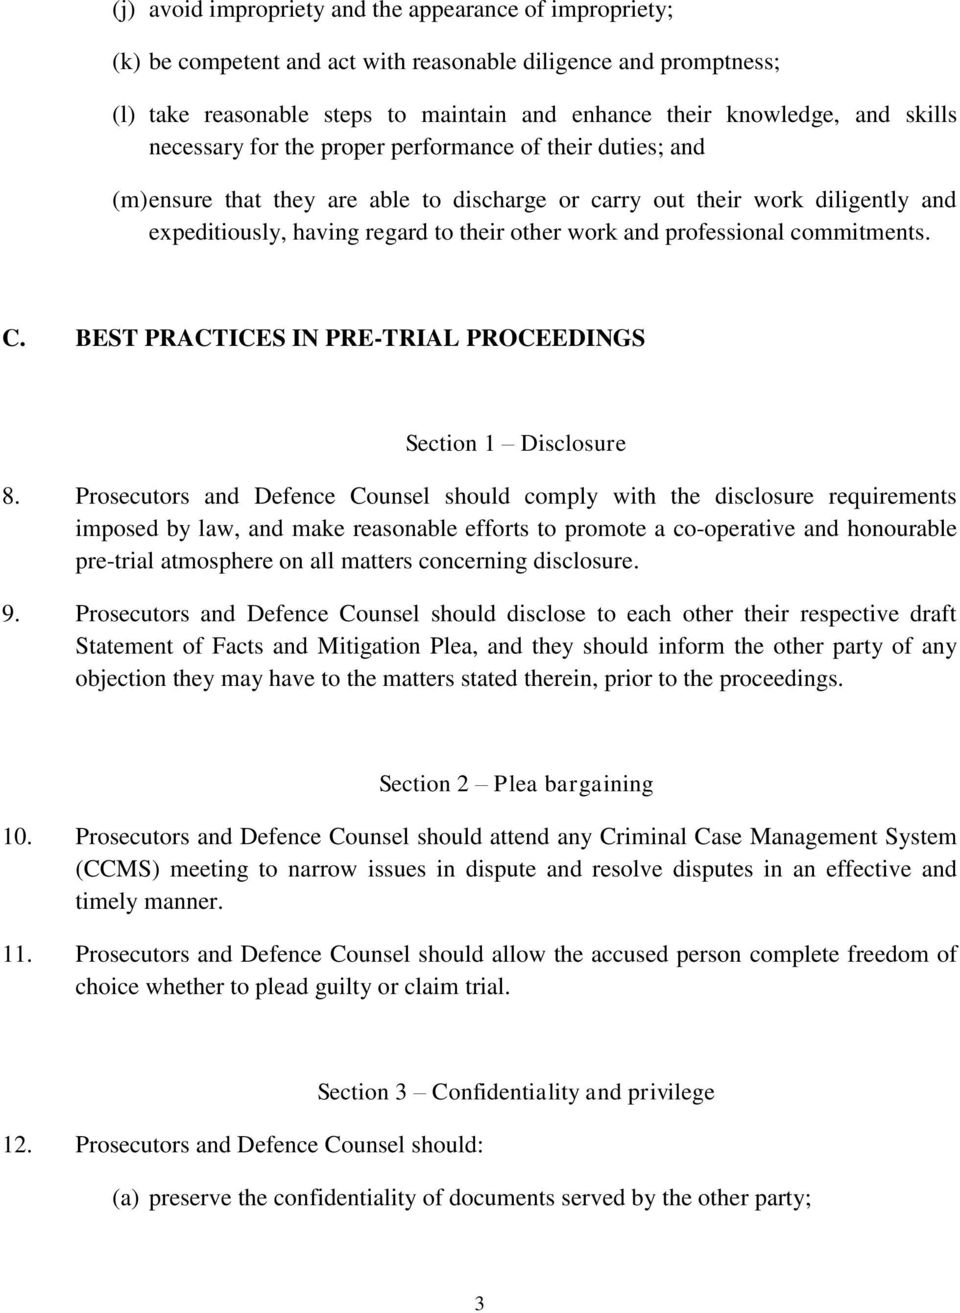 professional commitments. C. BEST PRACTICES IN PRE-TRIAL PROCEEDINGS Section 1 Disclosure 8.